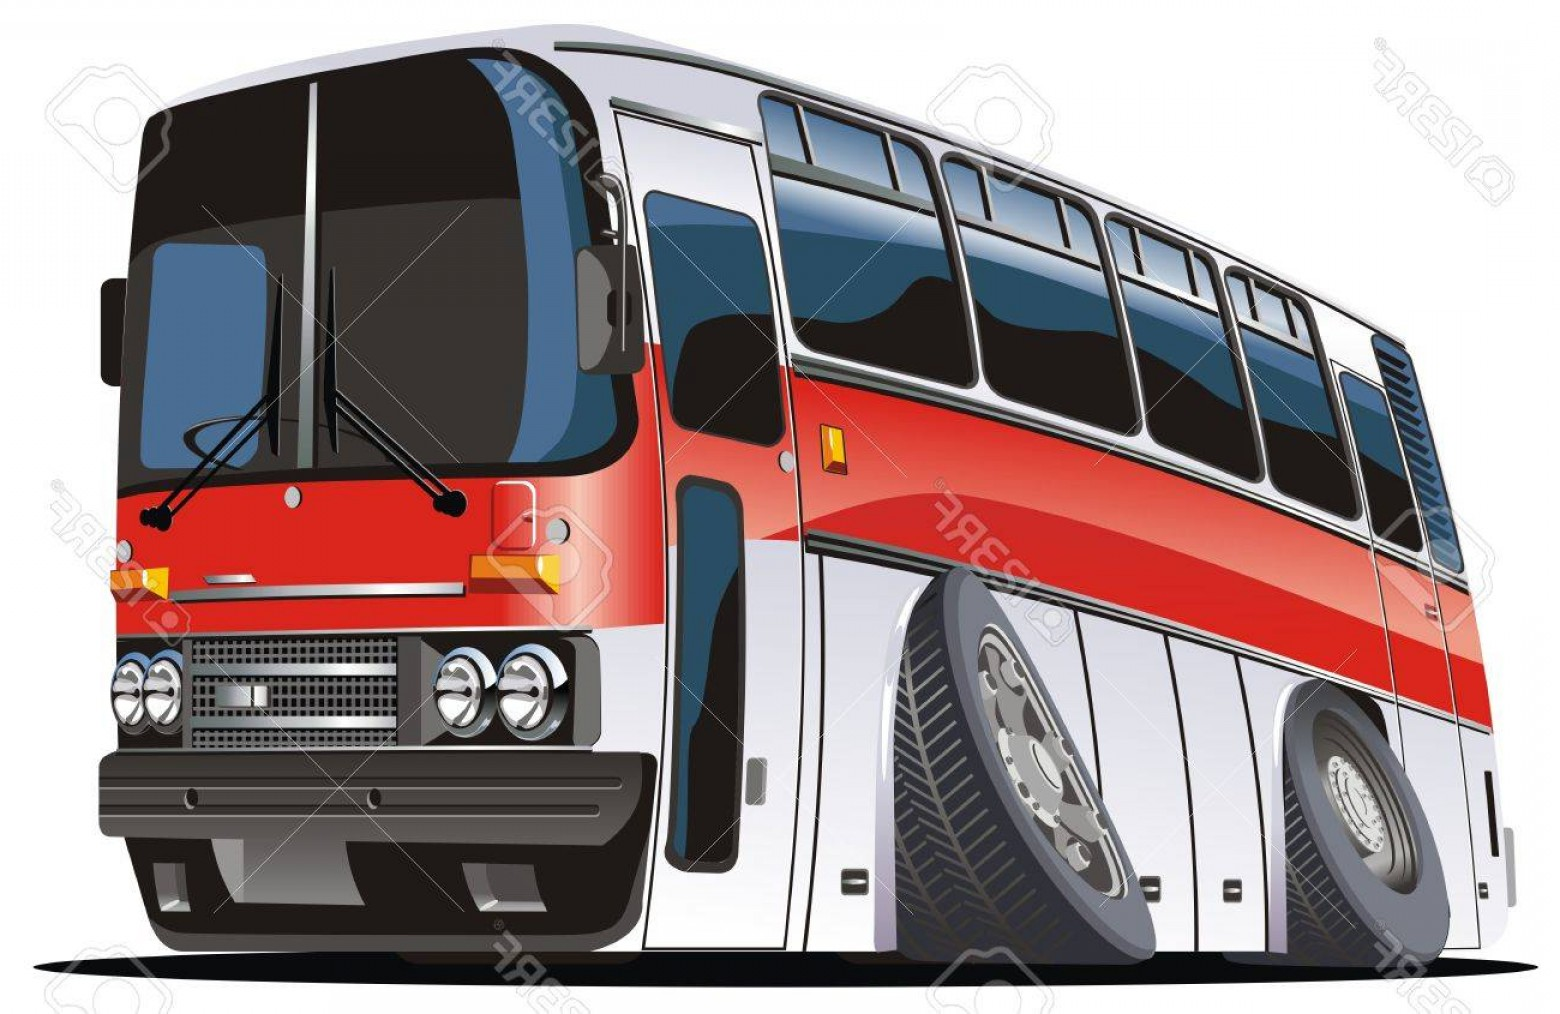 Pic Bus Vector Format: Photocartoon Tourist Bus Isolated On White Background Available Eps Vector Format Separated By Groups A